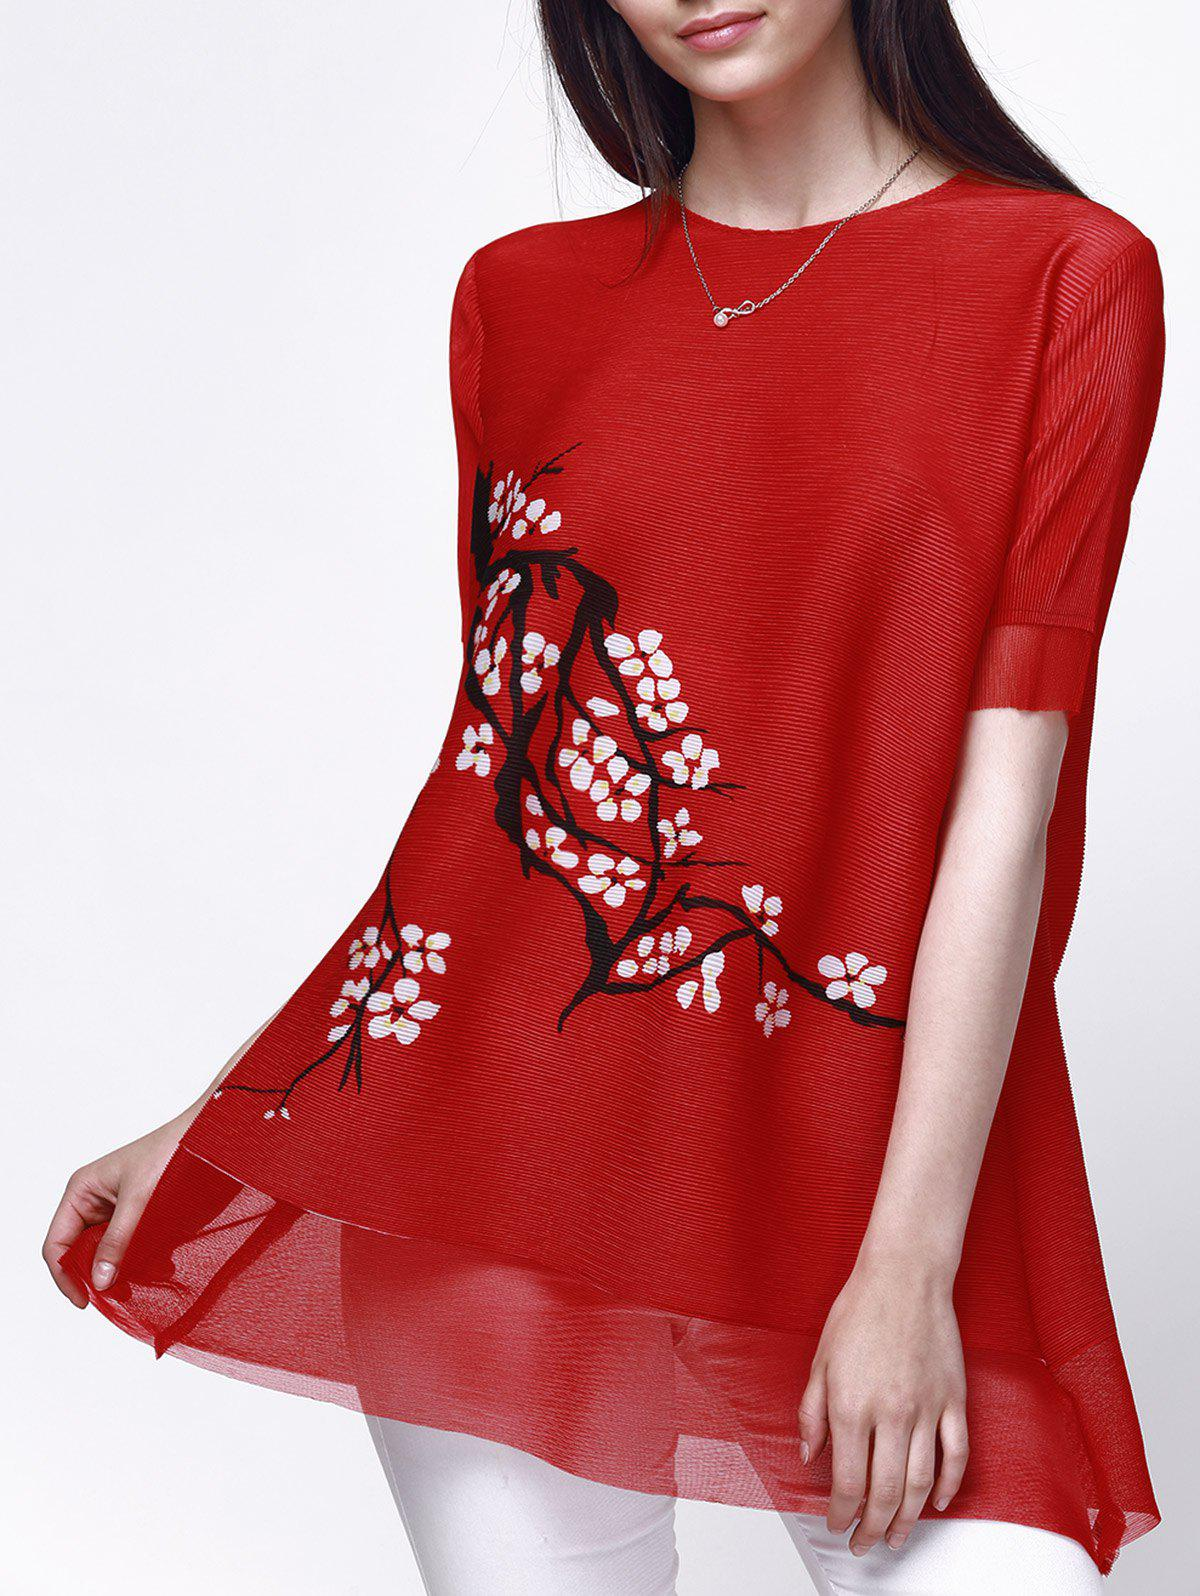 Casual Style Women's Jewel Neck Short Sleeve Floral Print Ribbed Blouse - RED ONE SIZE(FIT SIZE XS TO M)